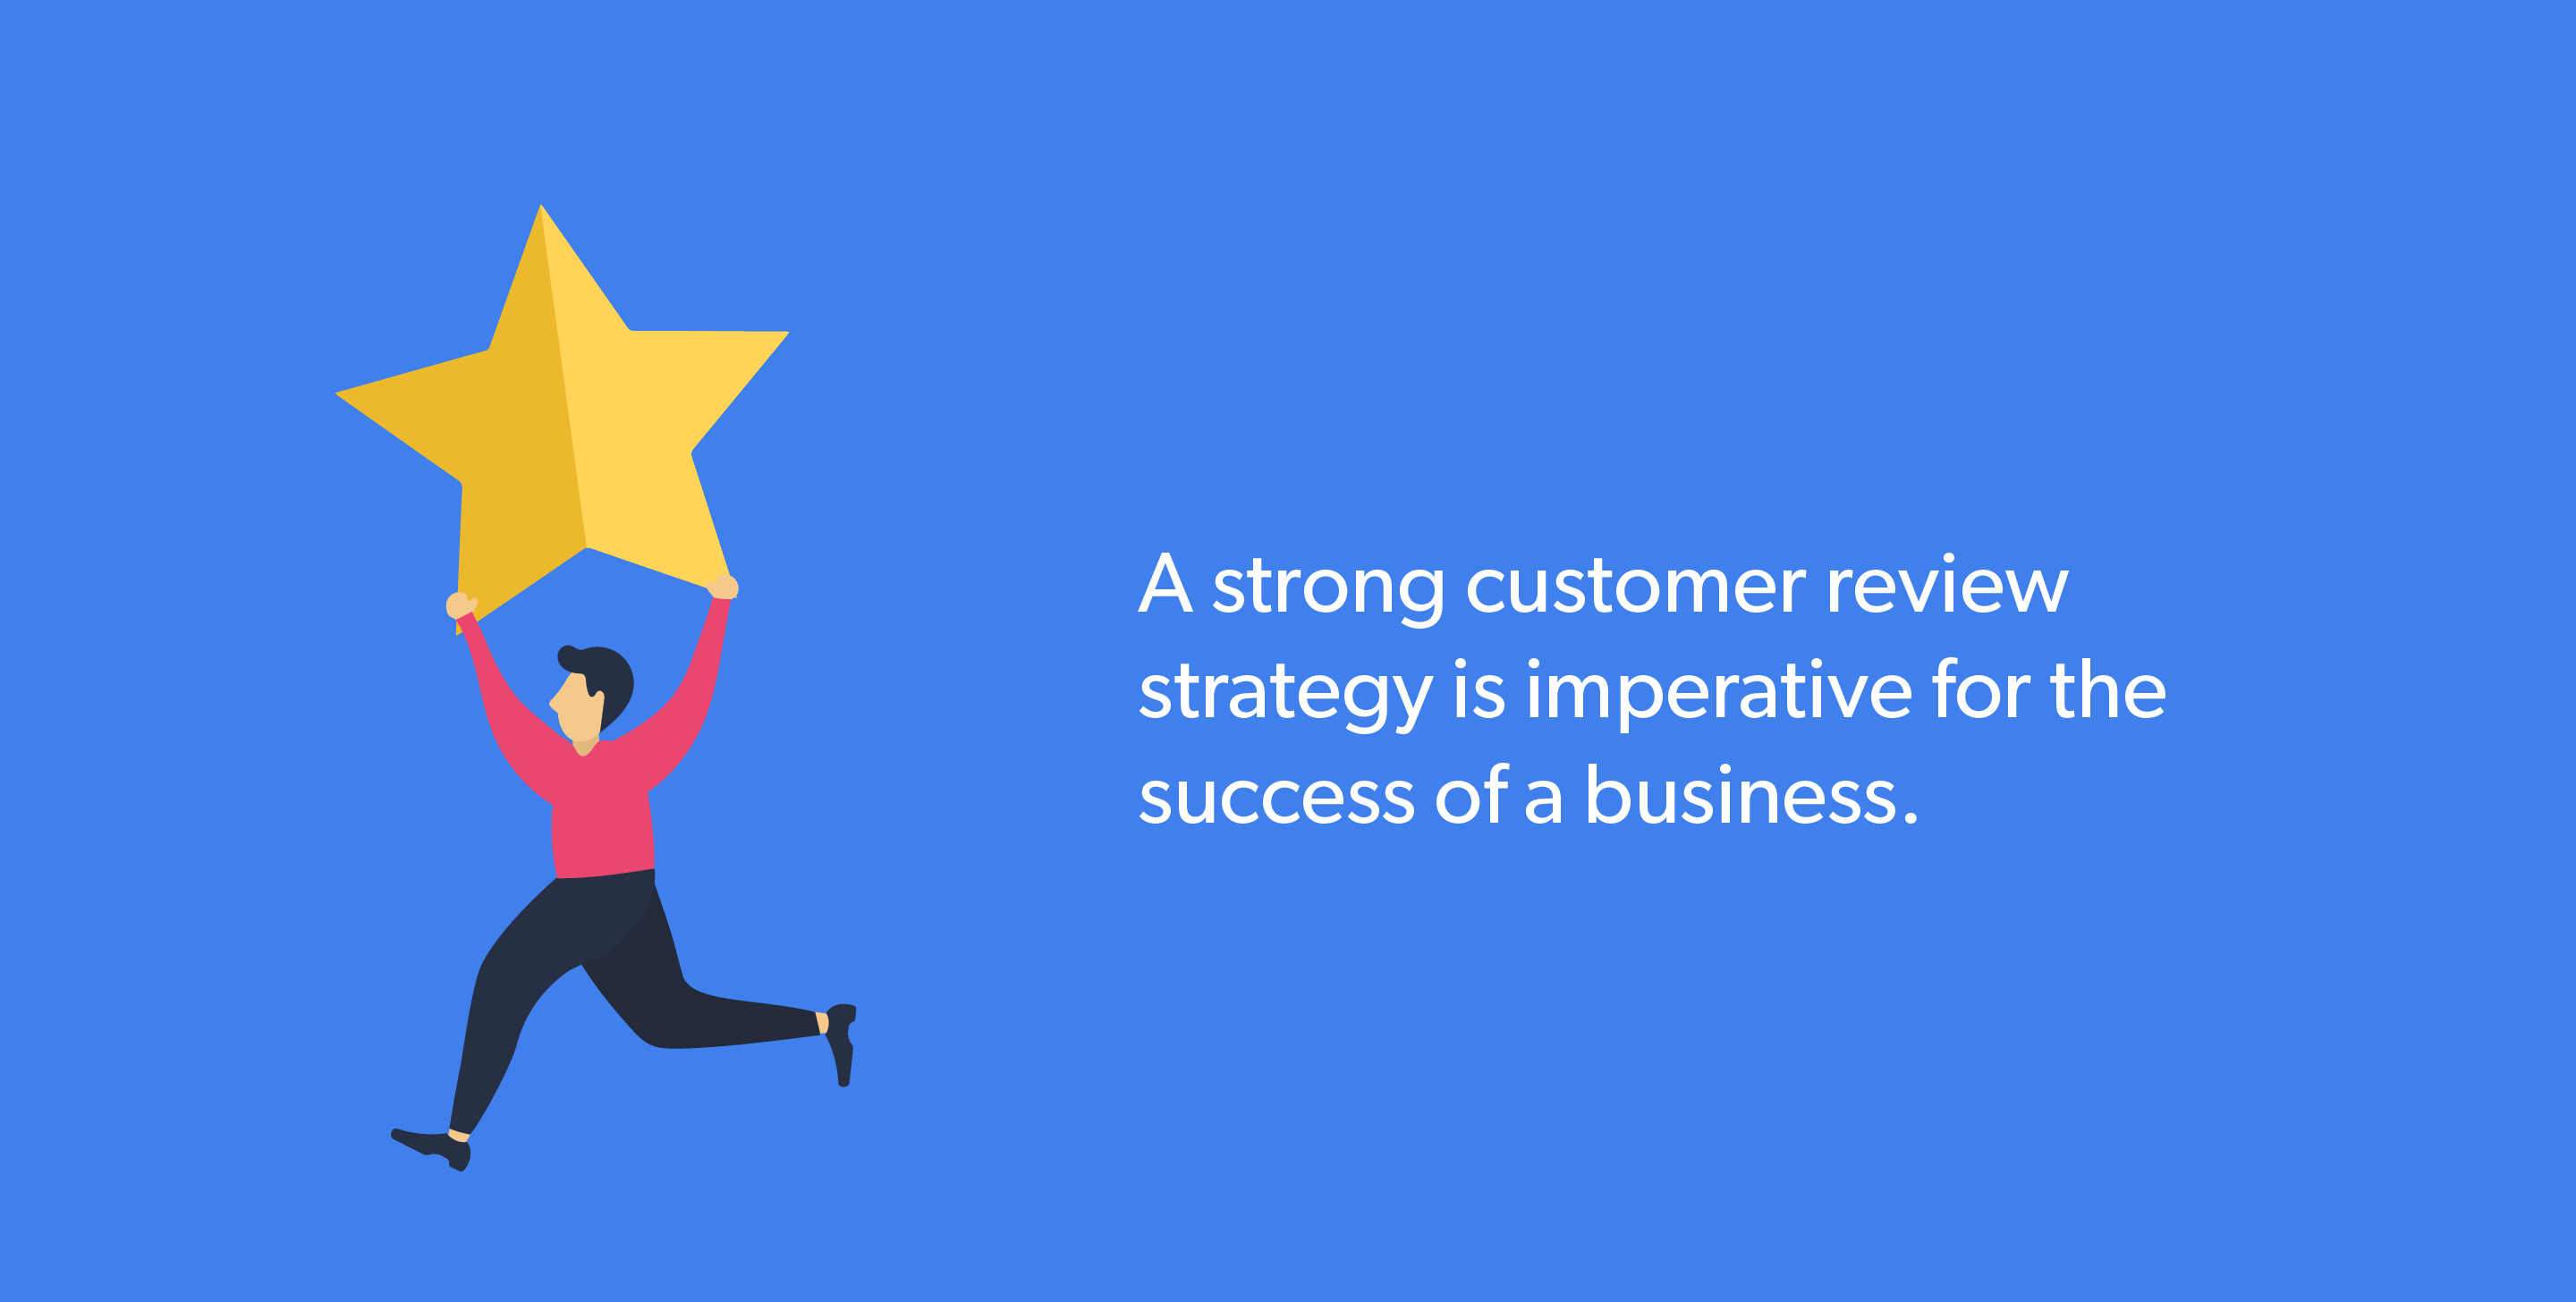 A strong customer review strategy is imperative for the success of a business.